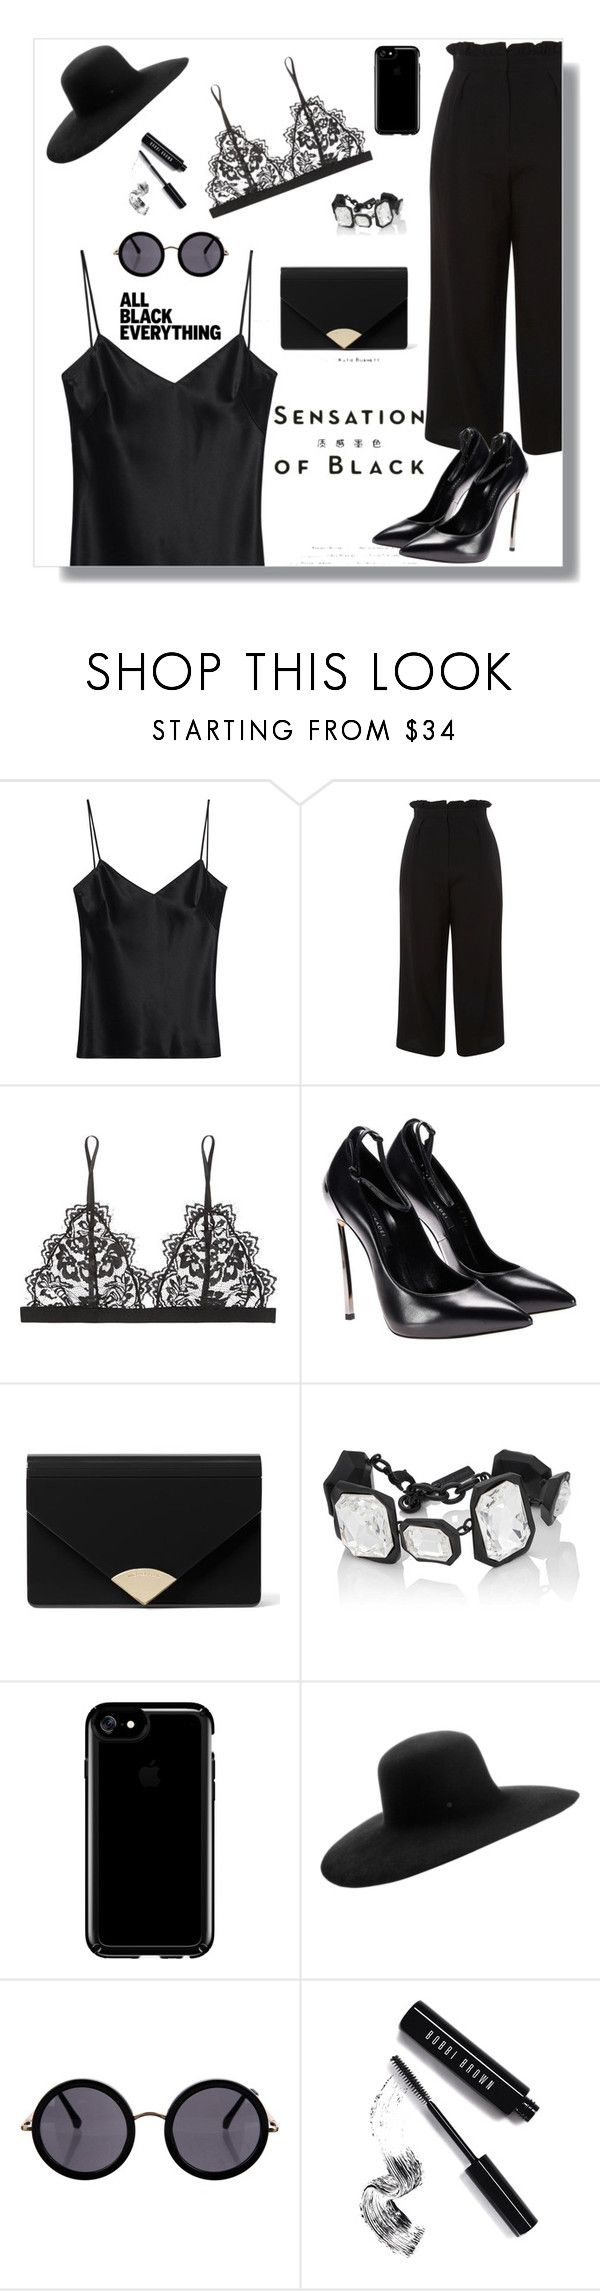 """All-Black"" by sofifer ❤ liked on Polyvore featuring Galvan, Topshop, Anine Bing, Vision, MICHAEL Michael Kors, AMBUSH, Speck, Maison Michel, The Row and Bobbi Brown Cosmetics"